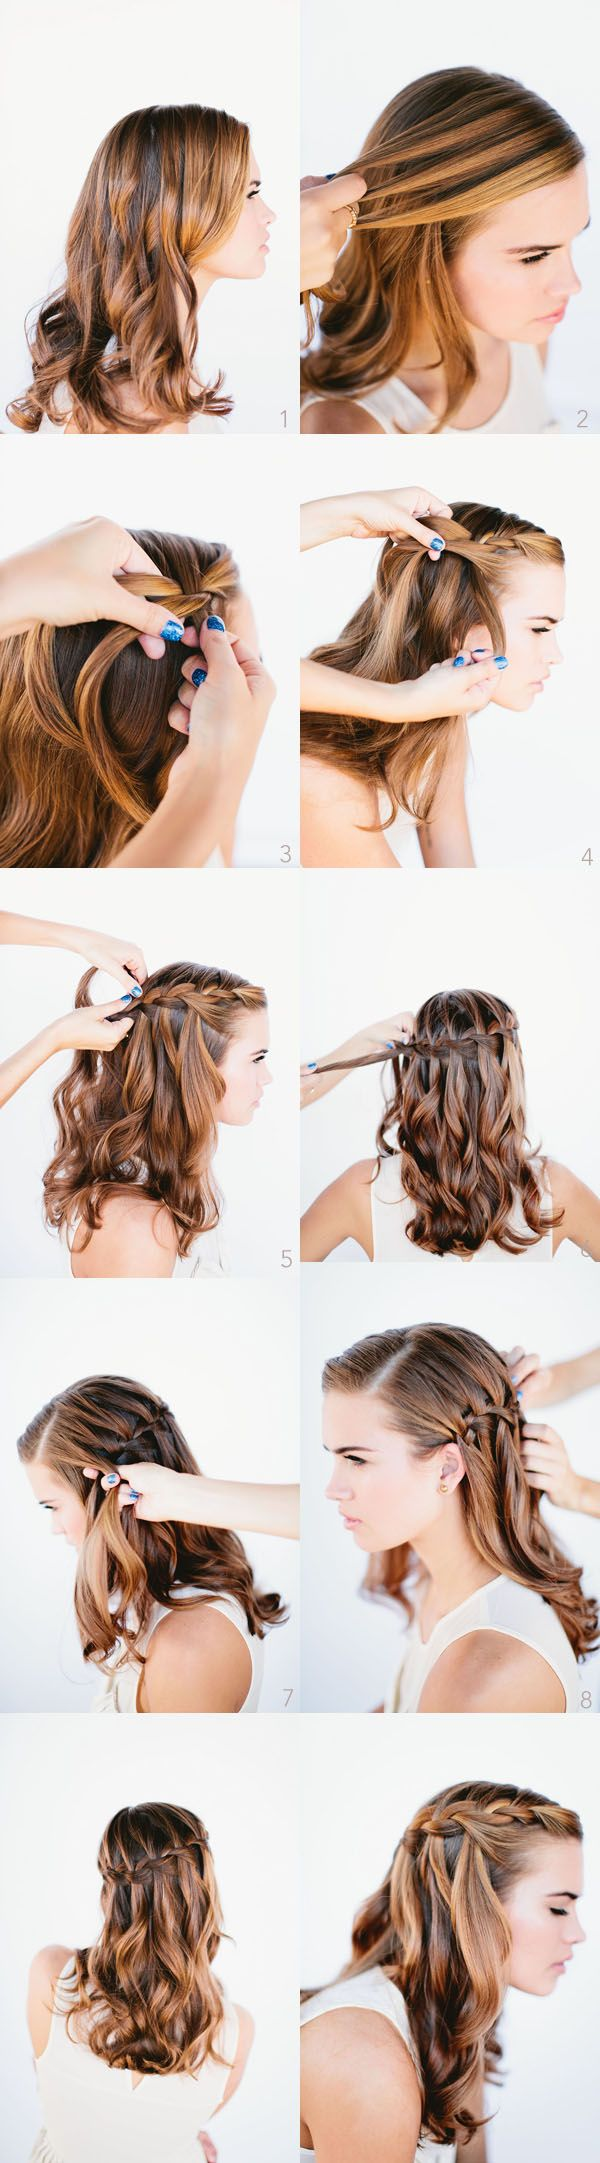 Waterfall Braid Wedding Hairstyles for Long Hair-- Beach hair! #inspiration #details #hair